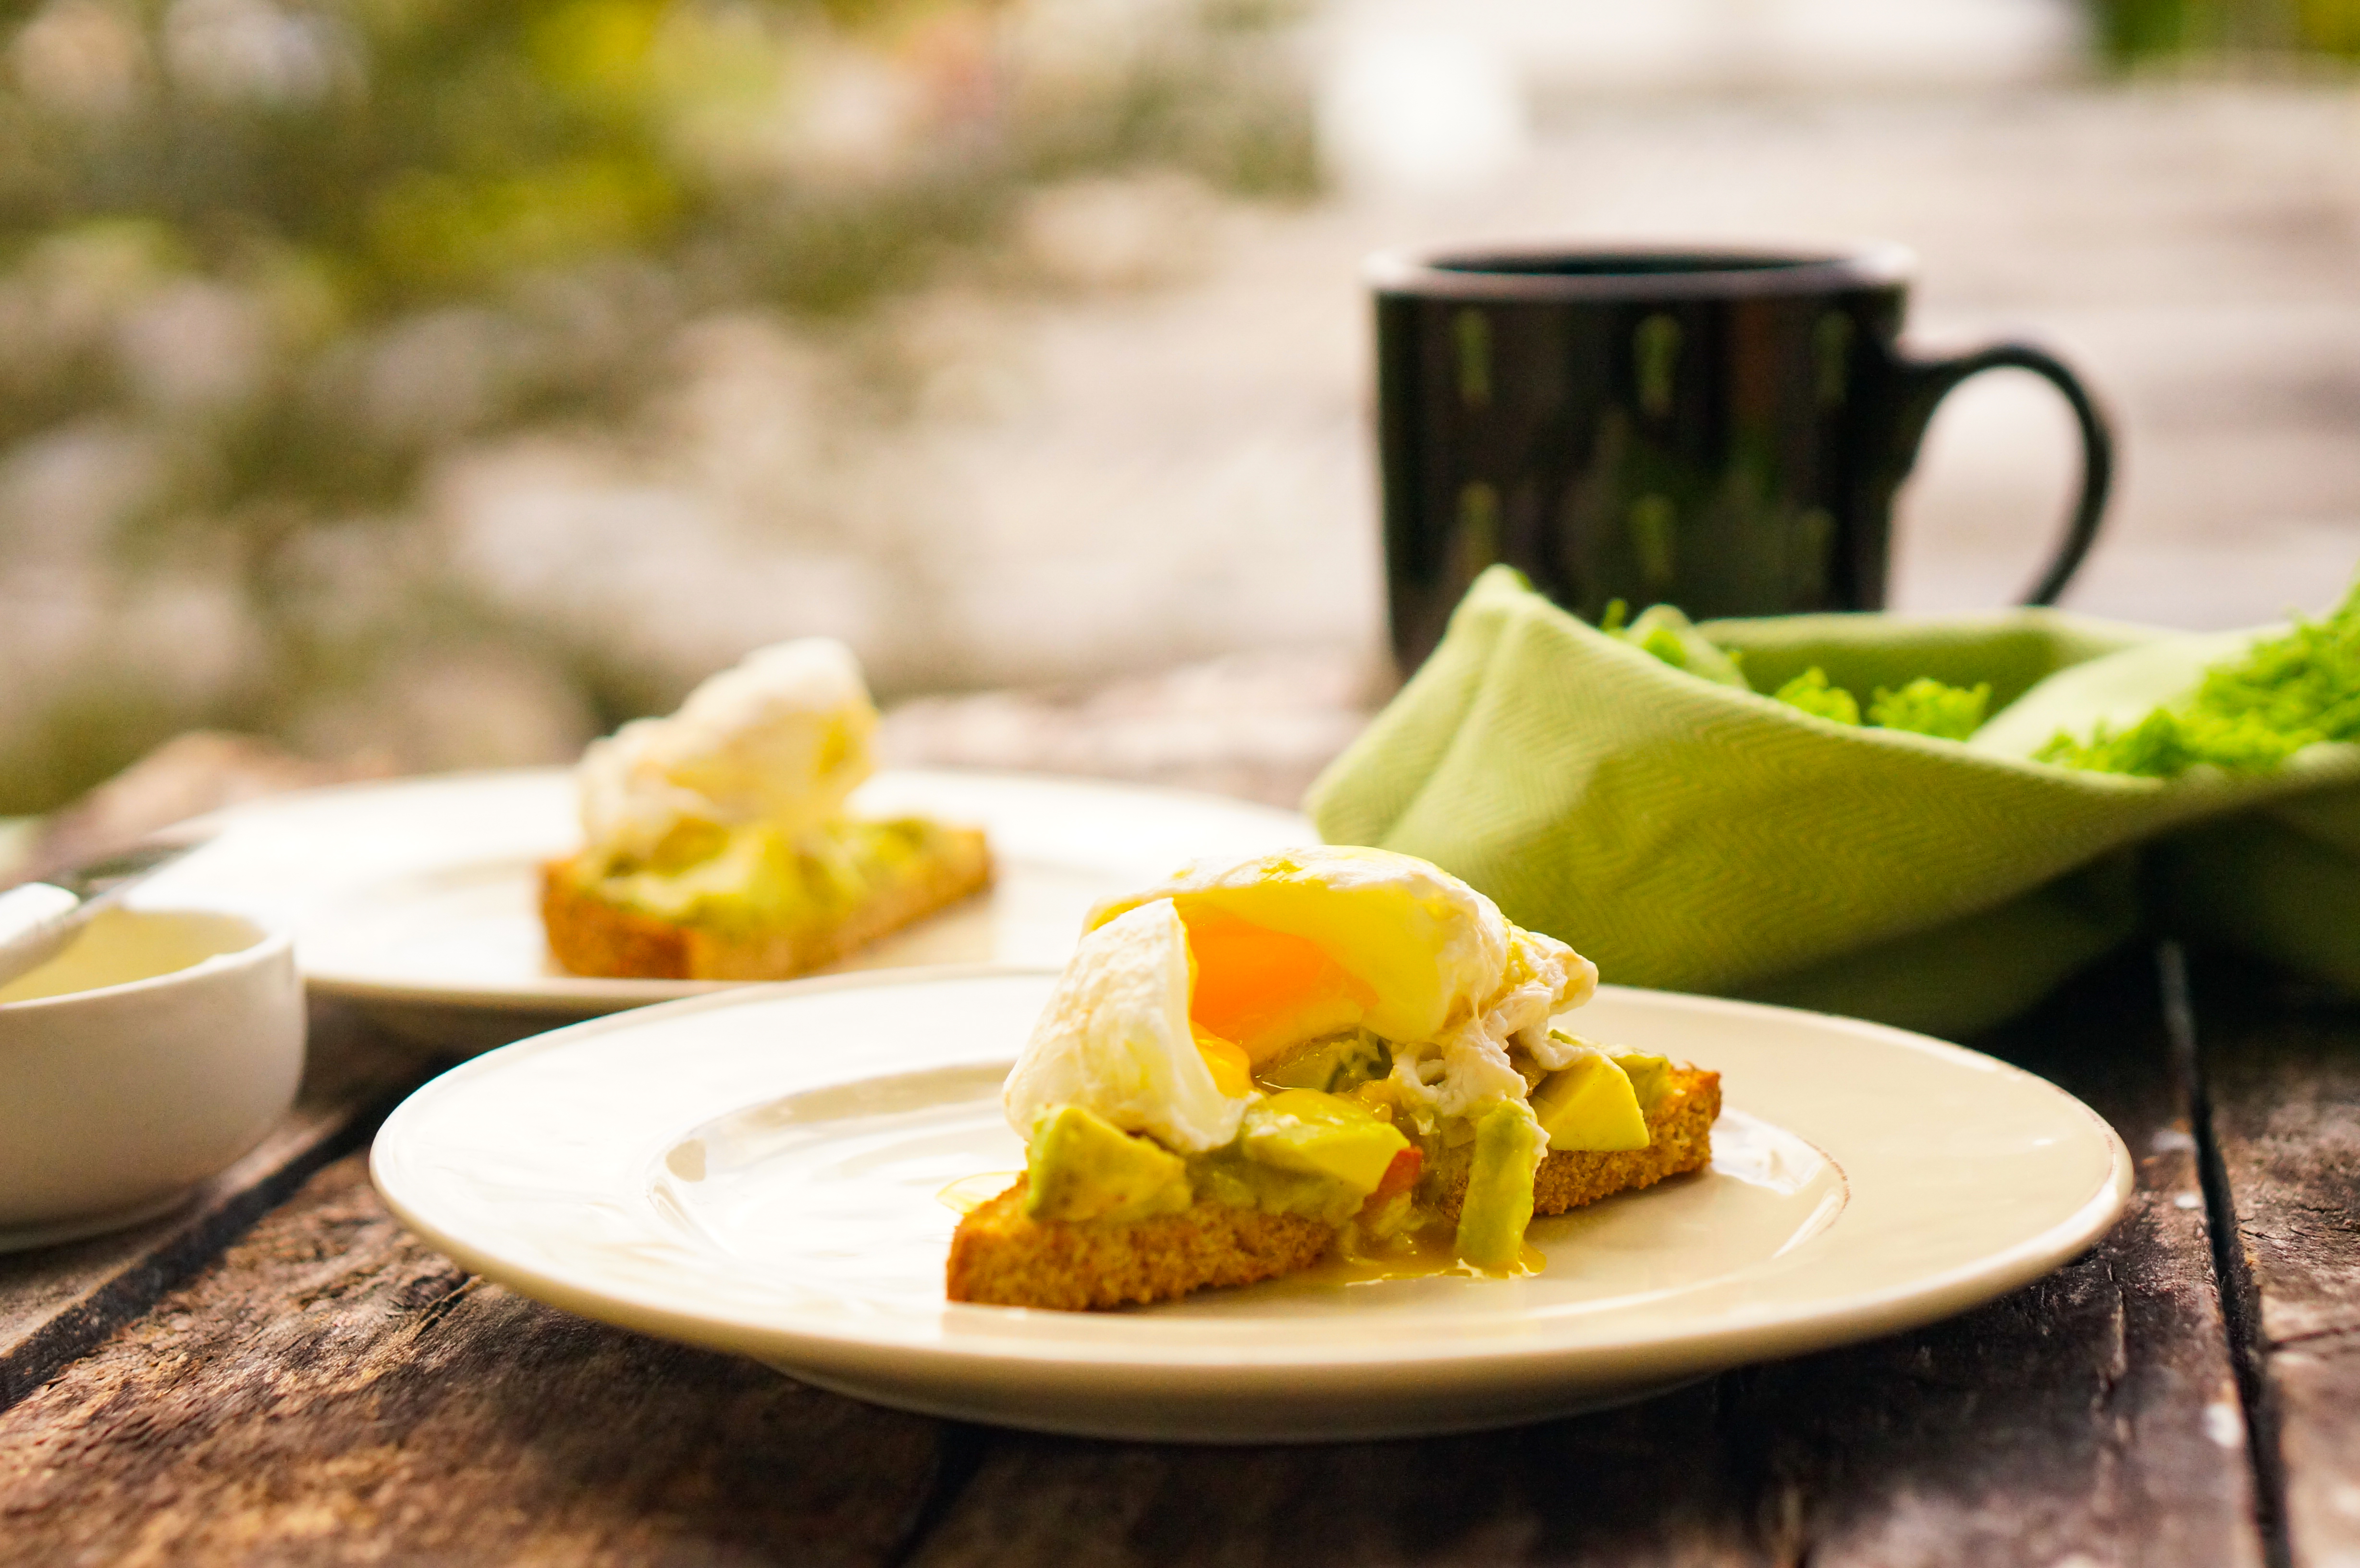 Poached egg and avocado on toast - Lemon Squeezy